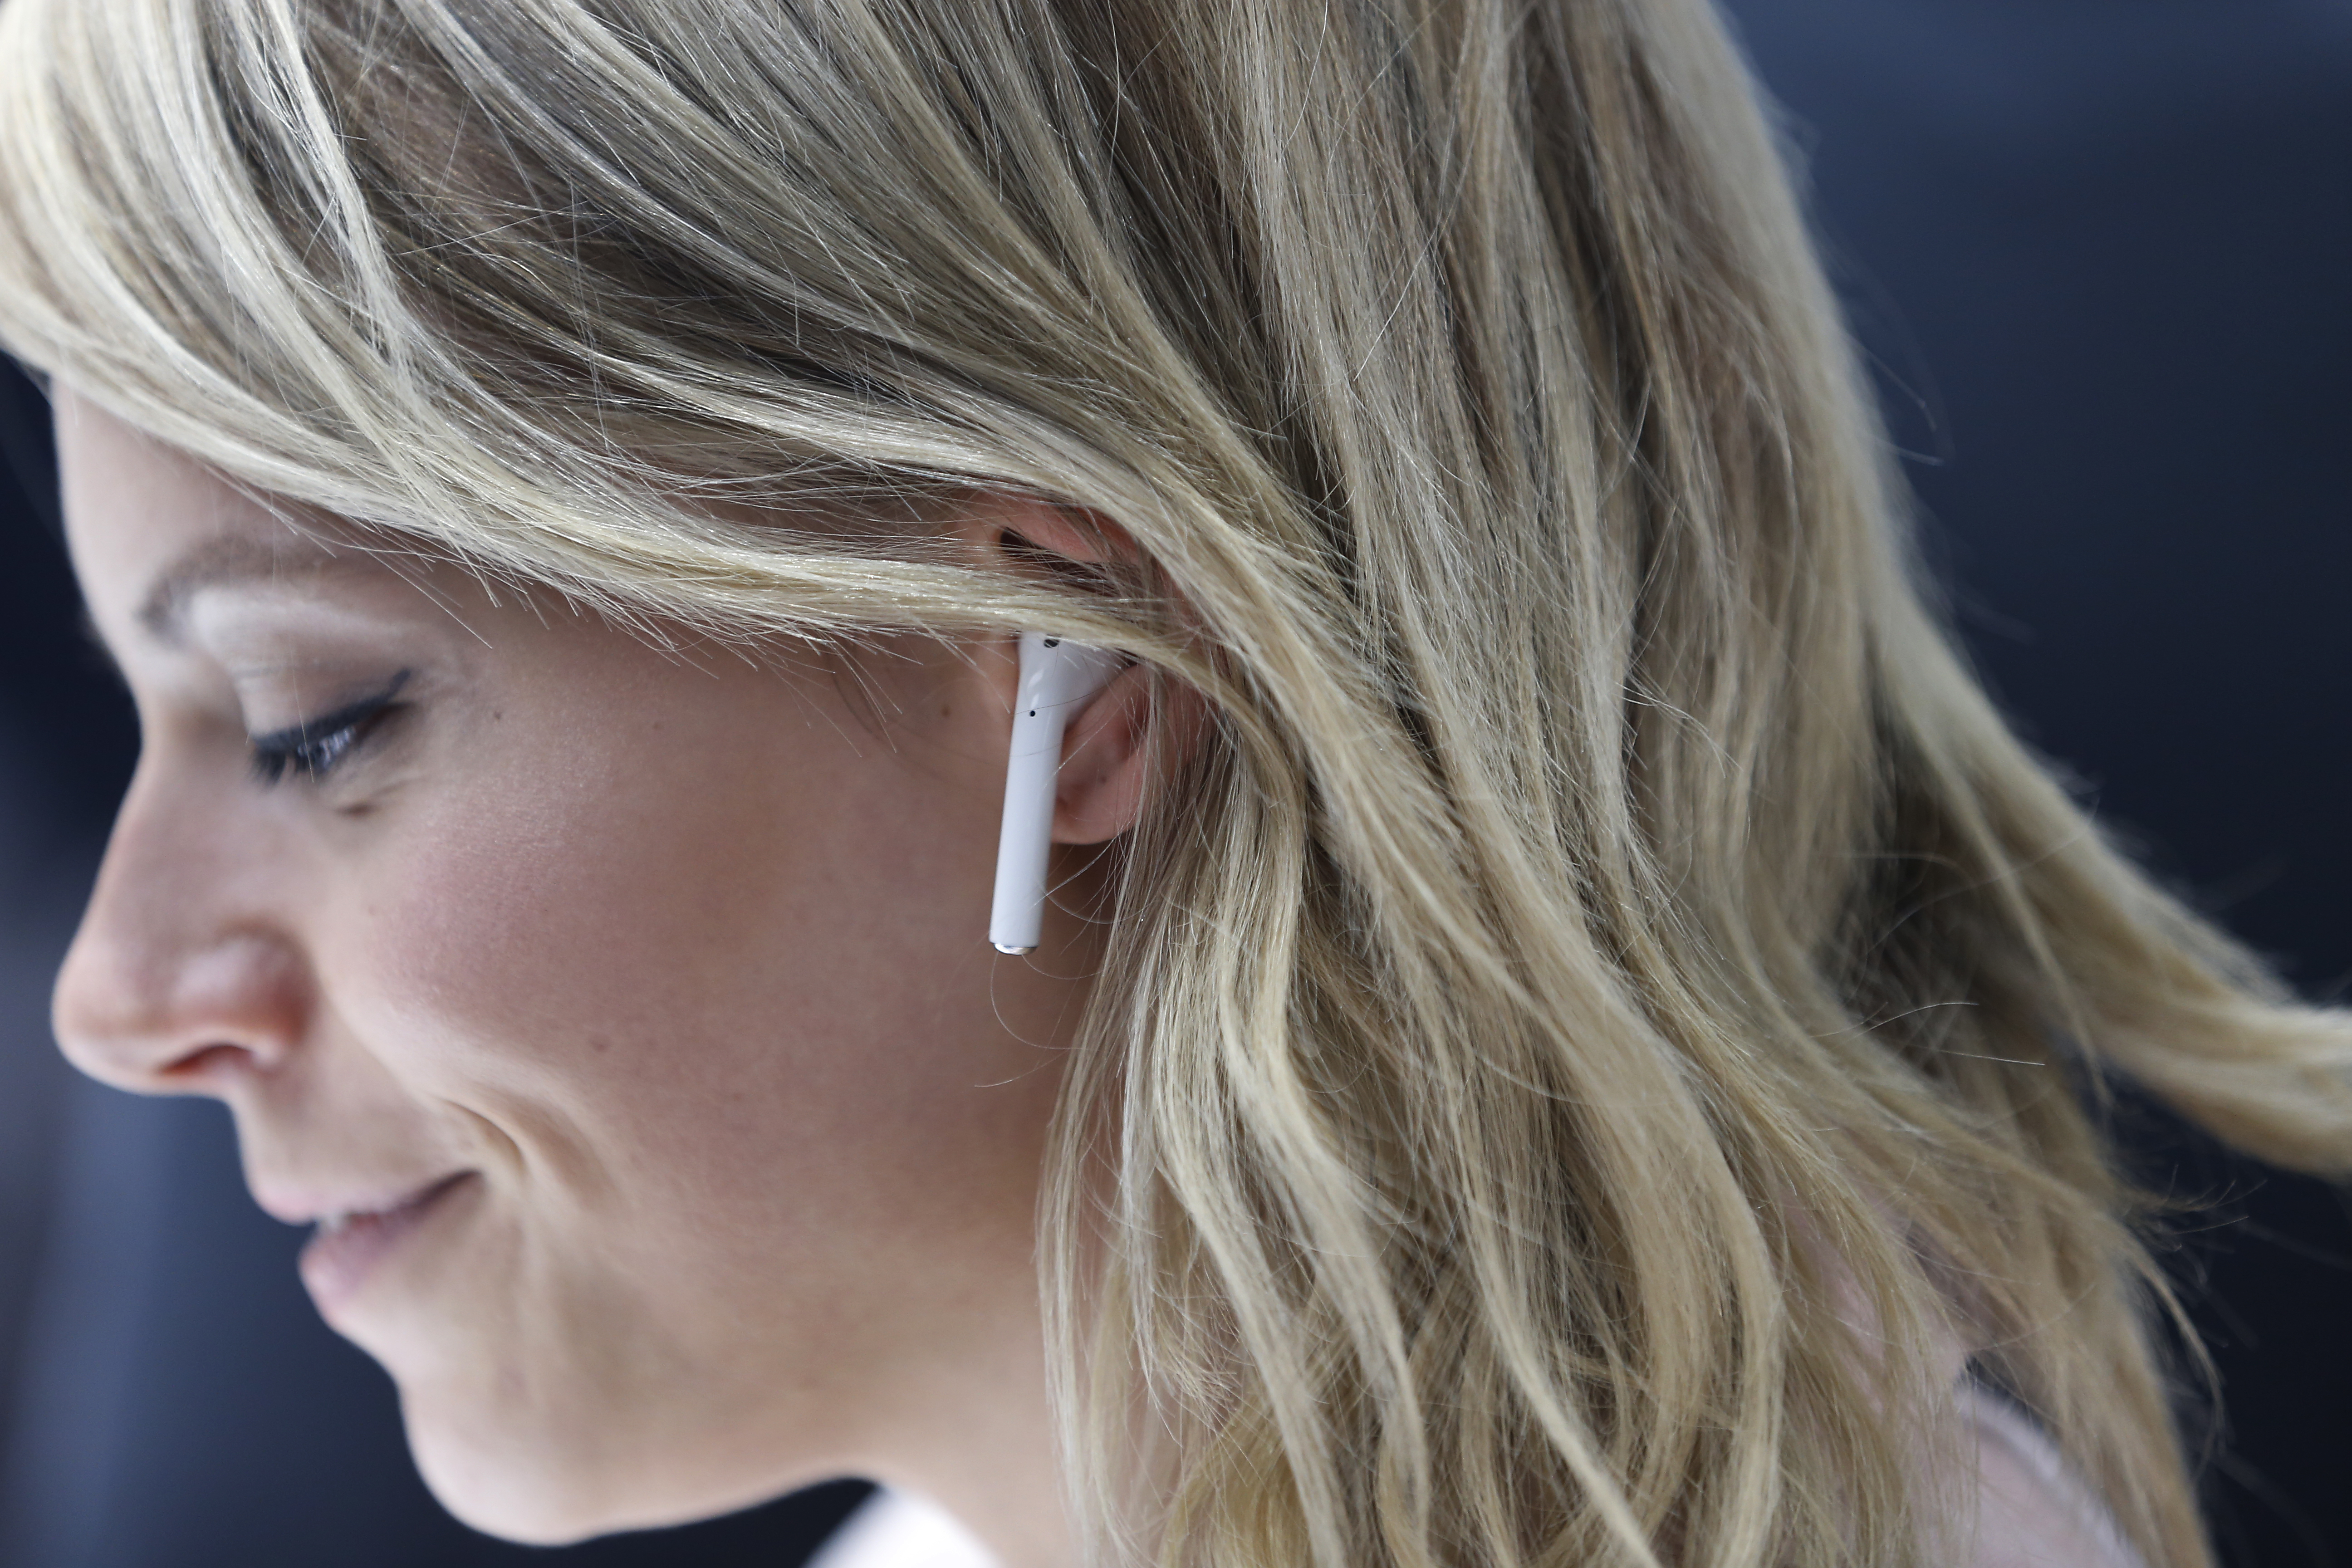 AirPods, explained